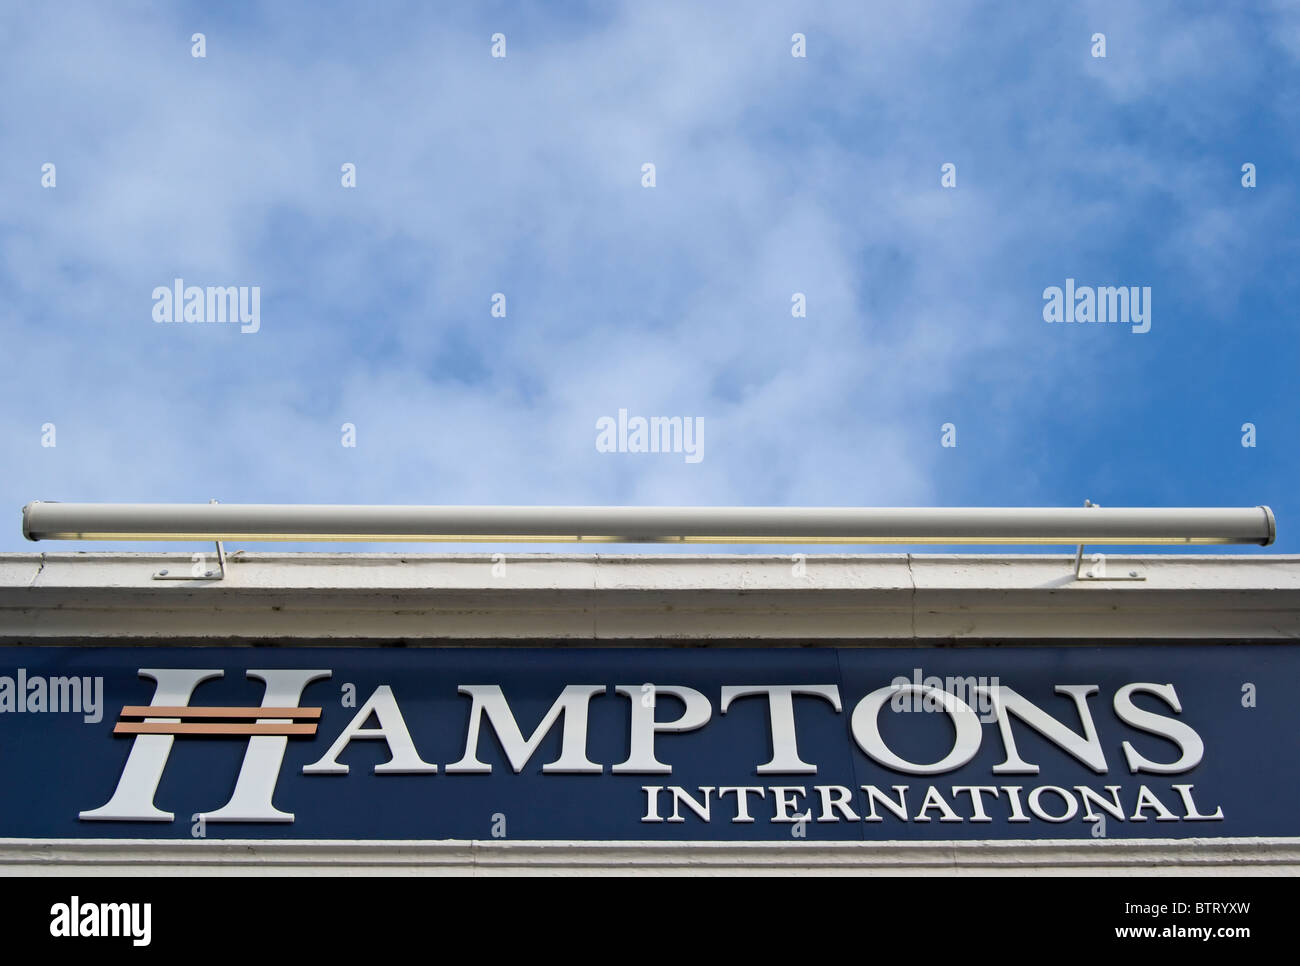 branch of hamptons estate agent in wimbledon, southwest london, england - Stock Image